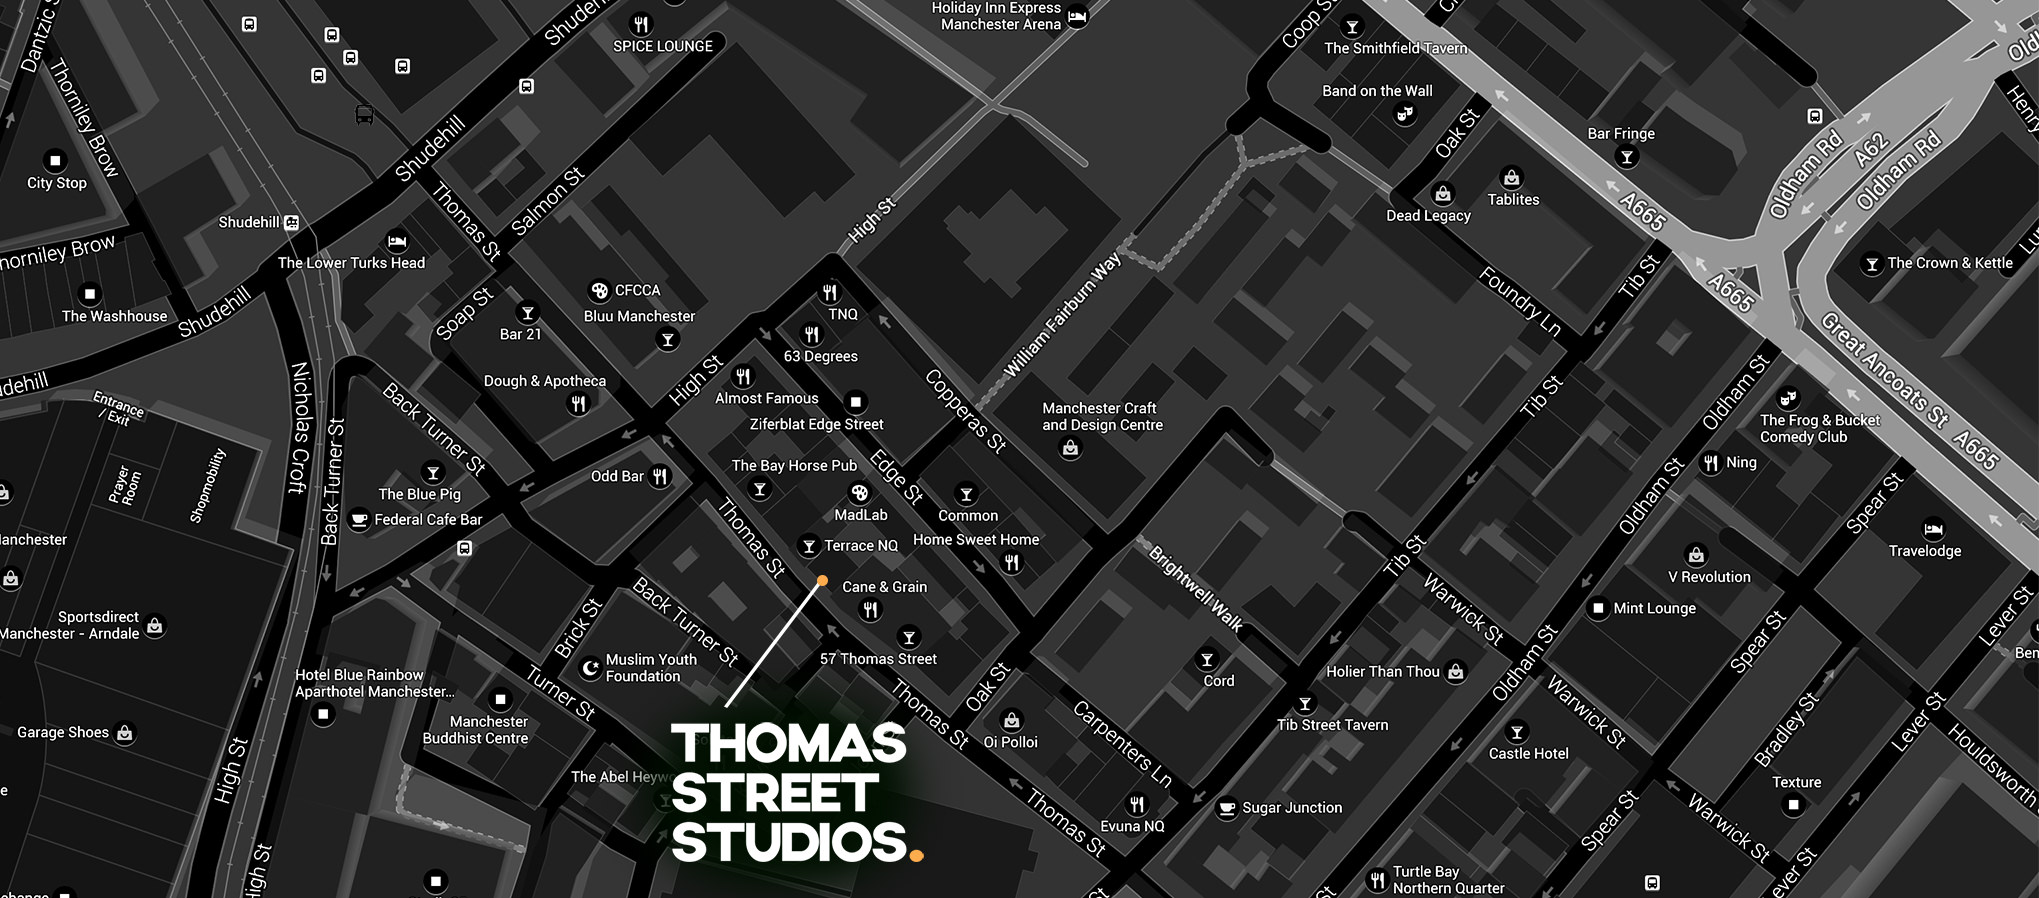 thomas-street-studios-location